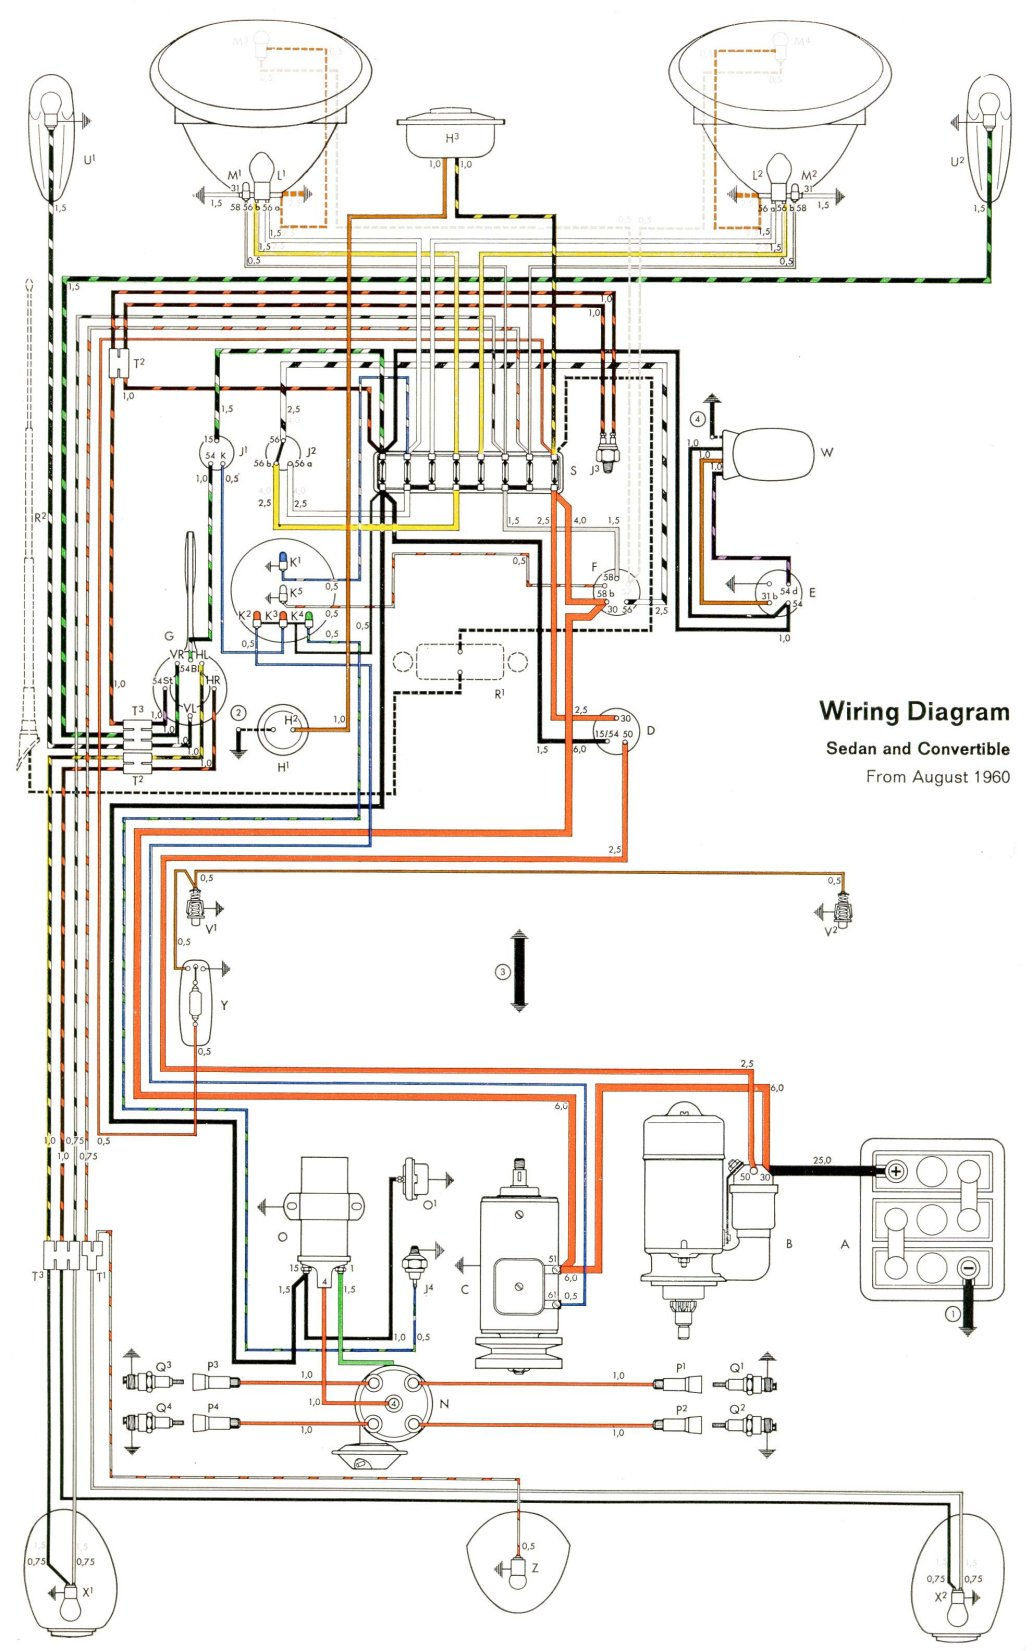 1970 beetle wiring diagram single phase motor starter vw super engine free